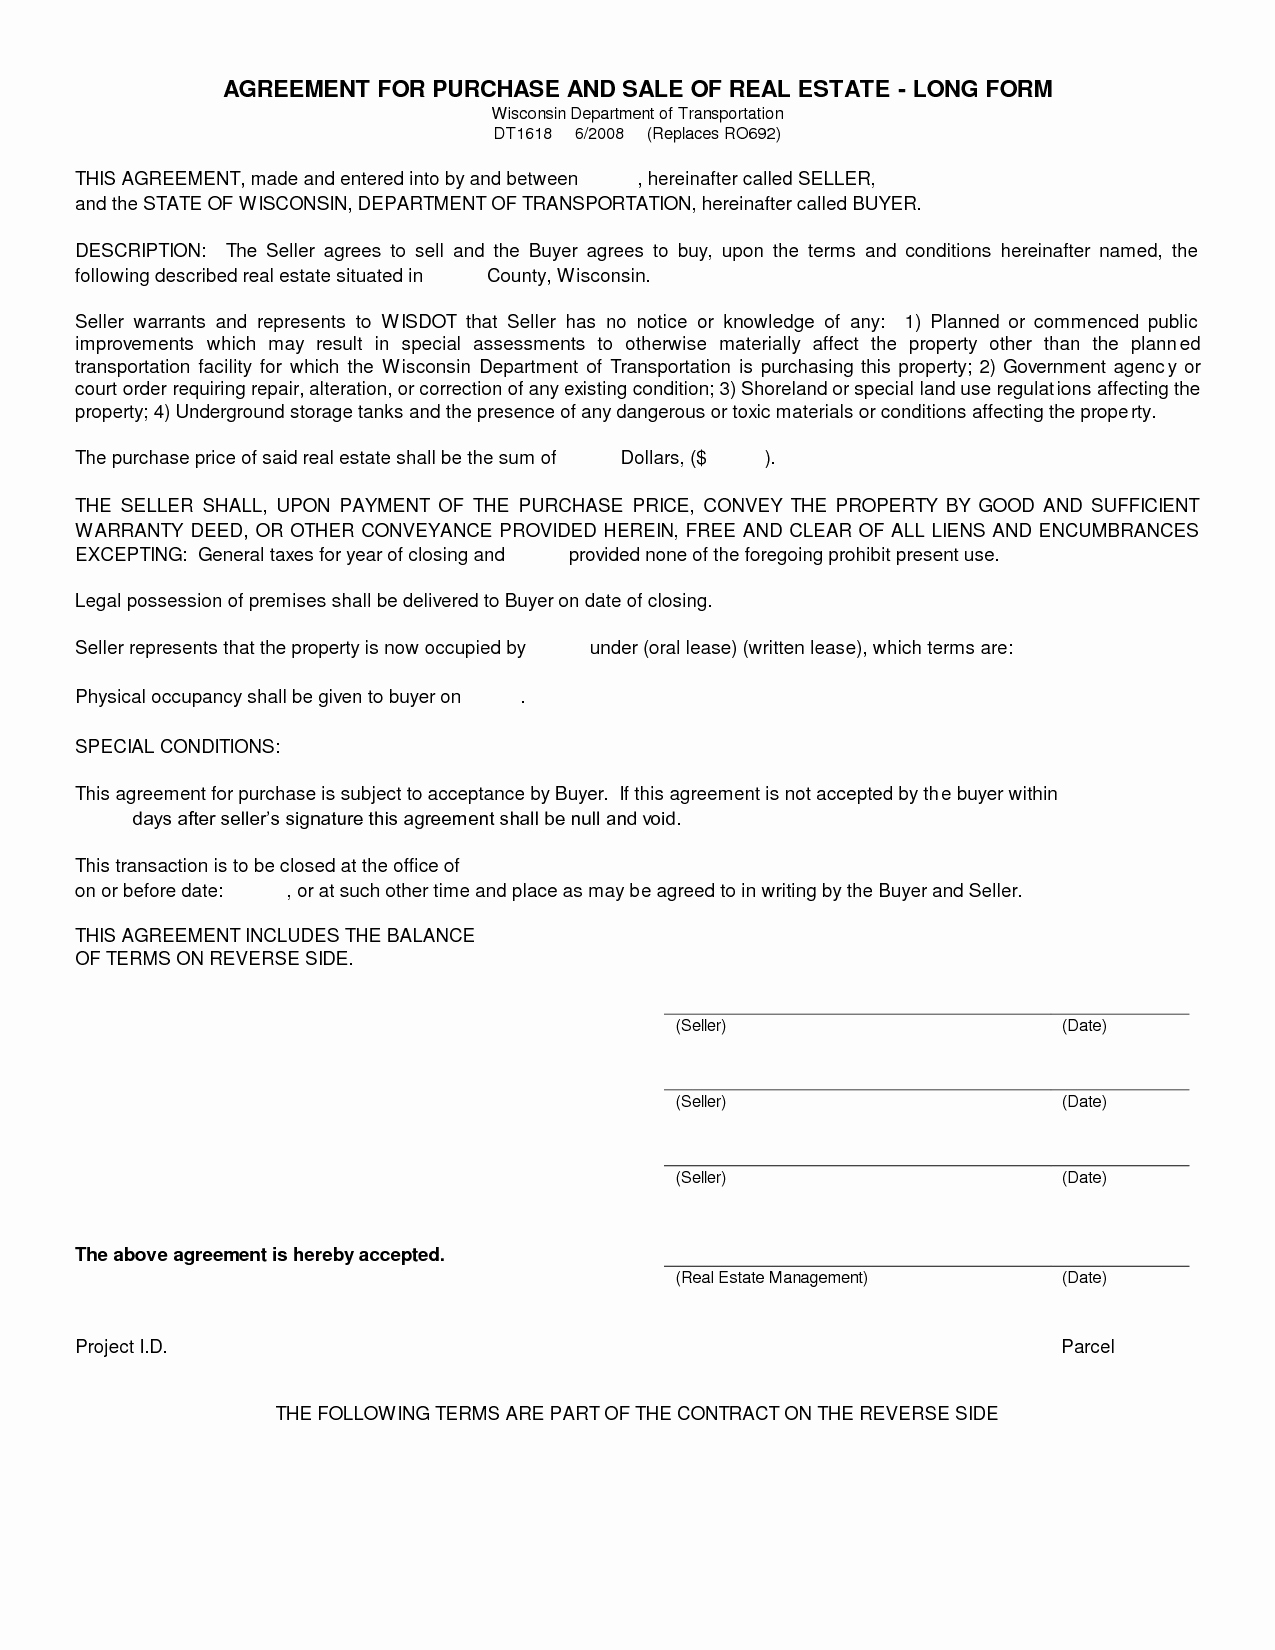 Simple Sales Agreement Template Beautiful Simple Land Purchase Agreement form